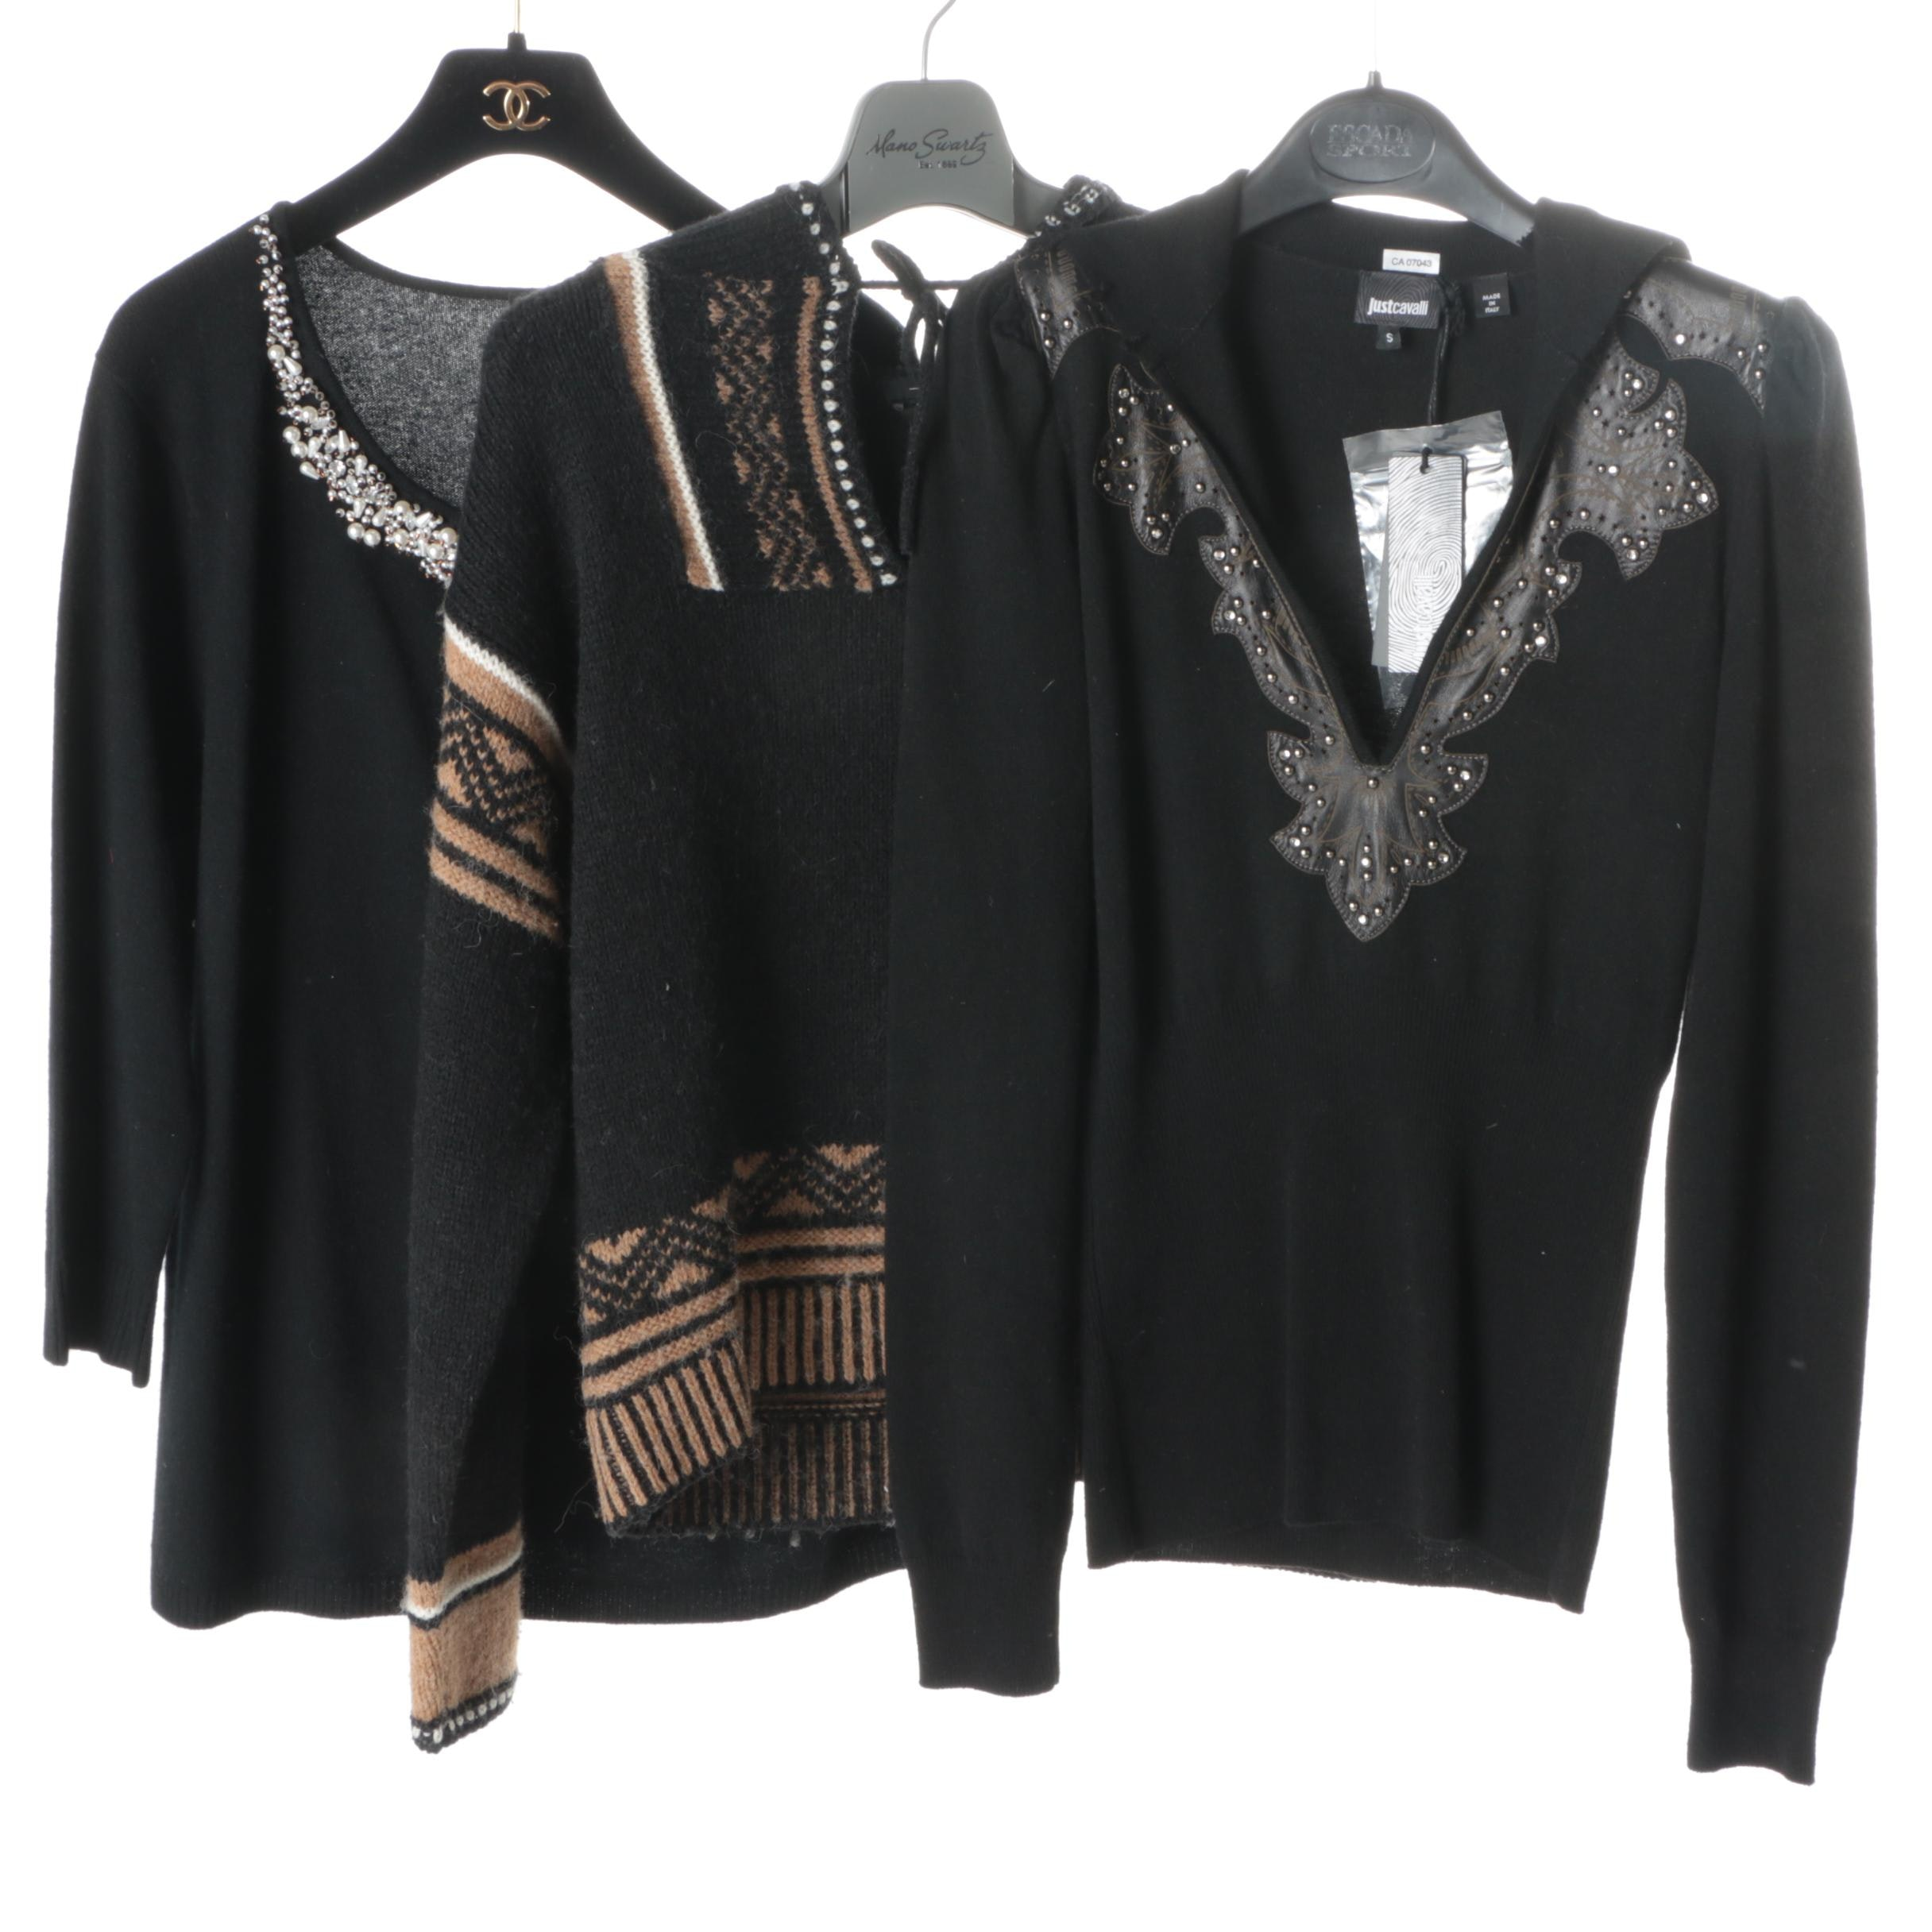 Women's Black Sweaters Including Just Cavalli